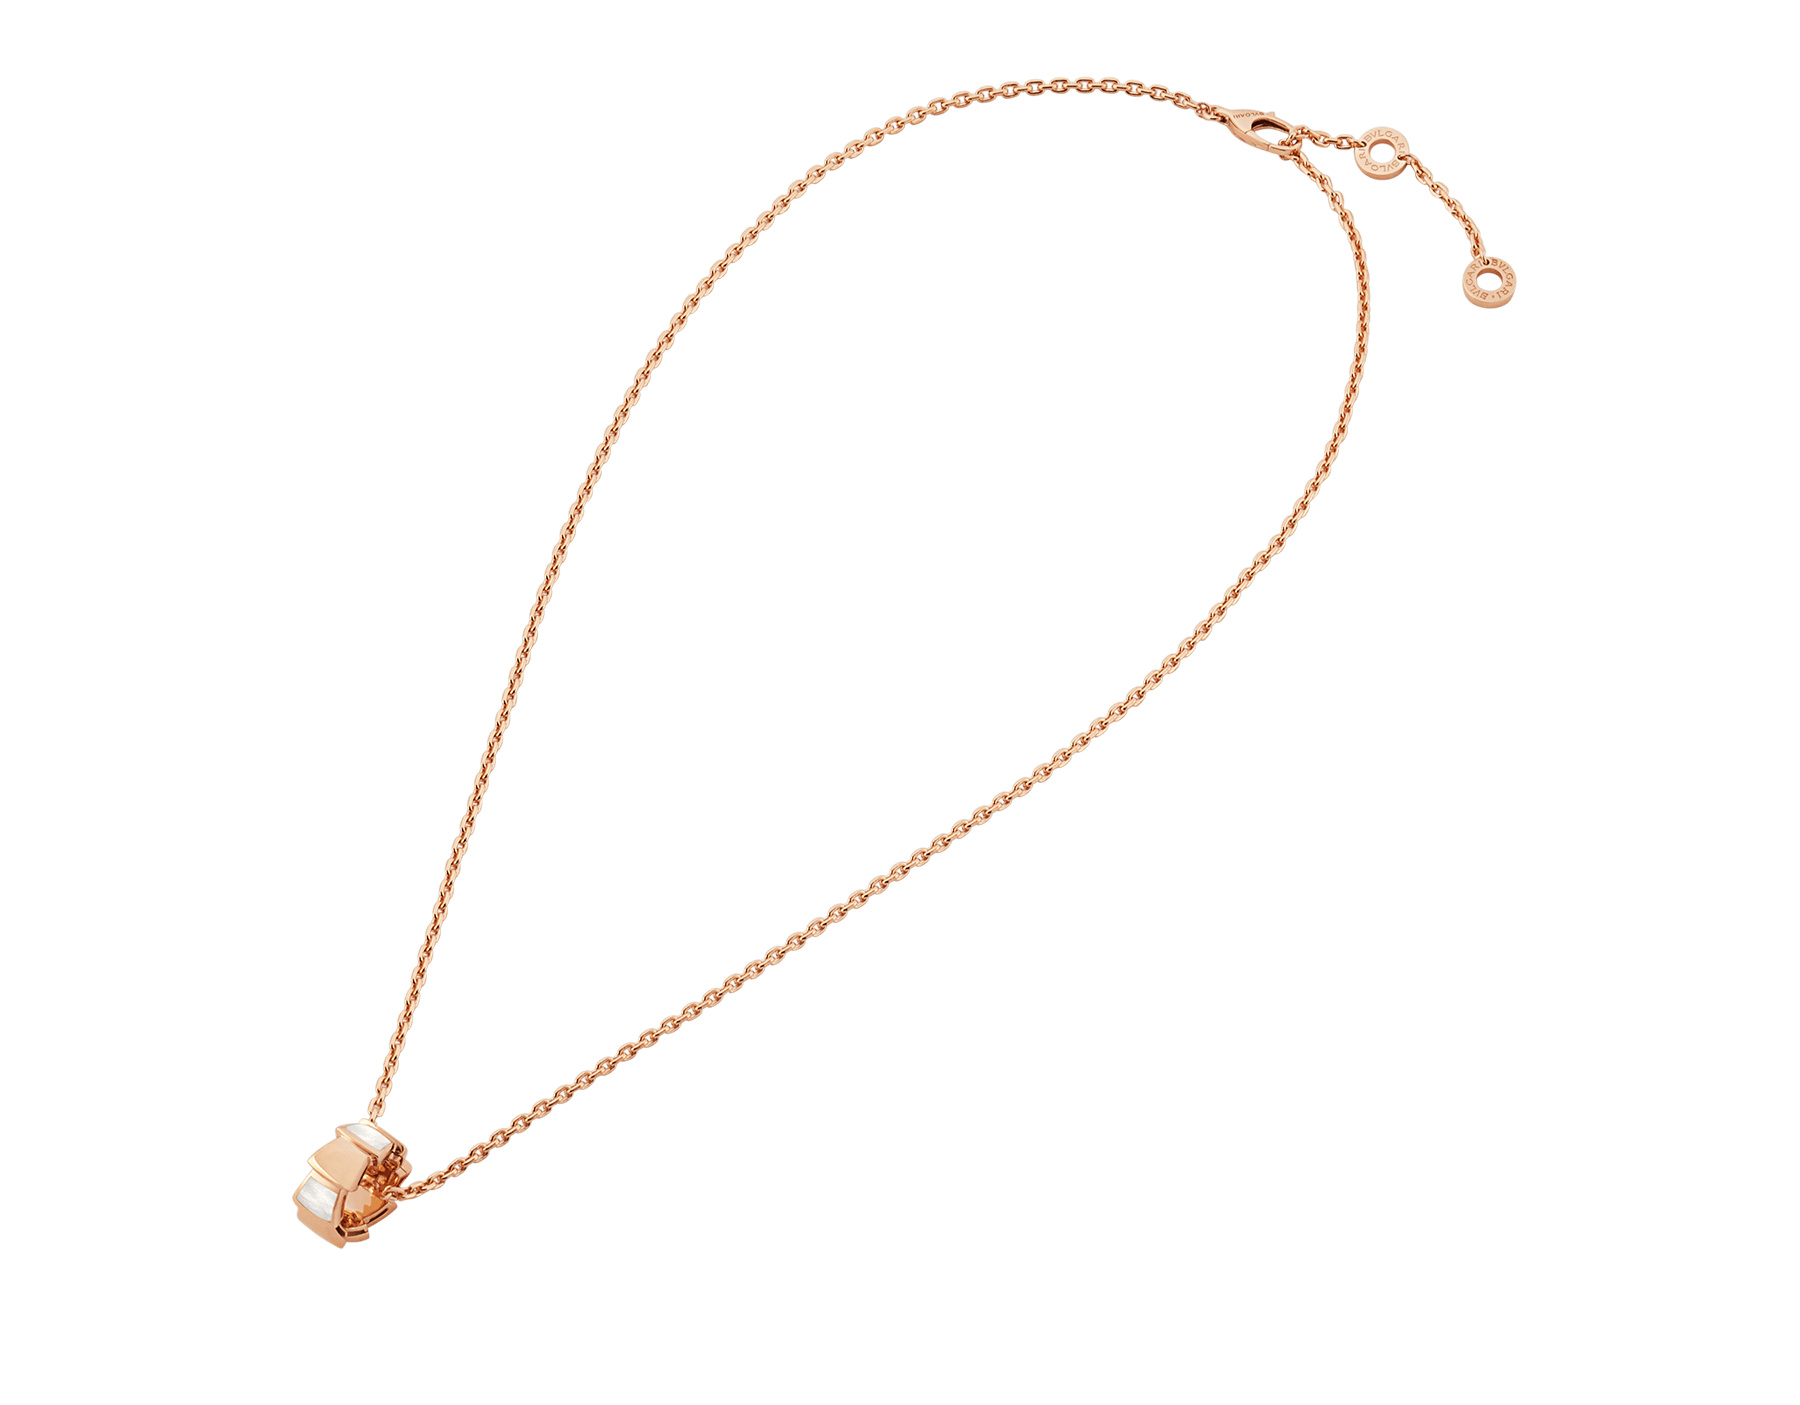 Serpenti 18 kt rose gold necklace with pendant set with mother-of-pearl elements 355795 image 2